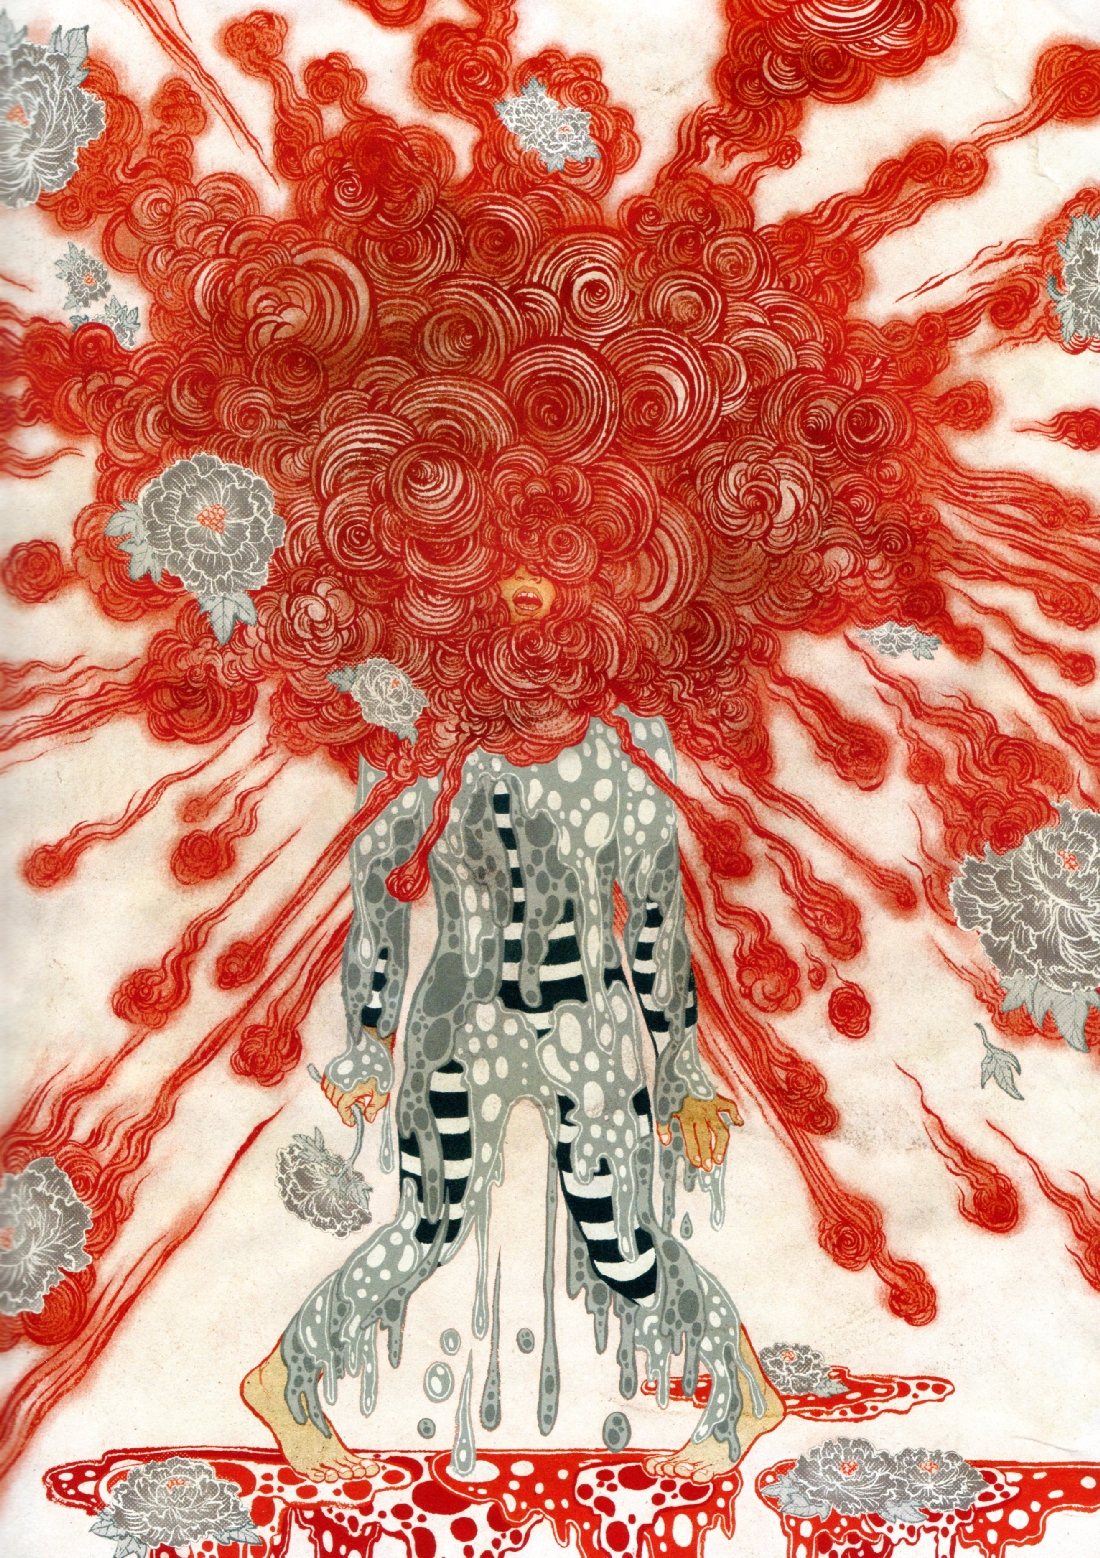 Blow Up 3 by Yuko Shimizu